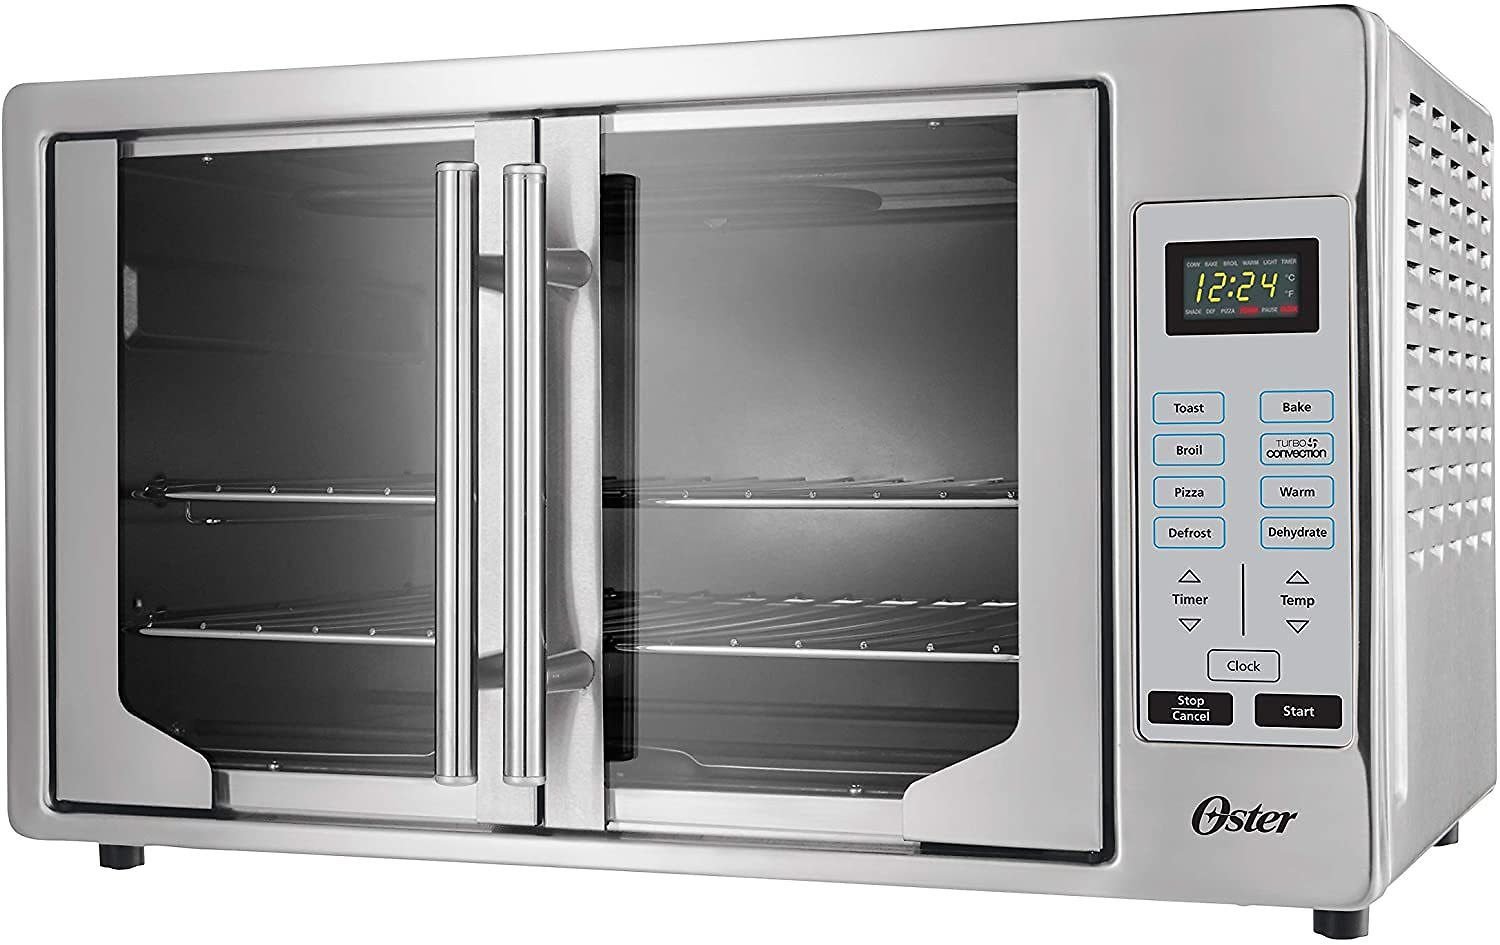 40% Off Oster French Convection Countertop and Toaster Oven   Single Door Pull and Digital Controls   Stainless Steel, Extra Lar